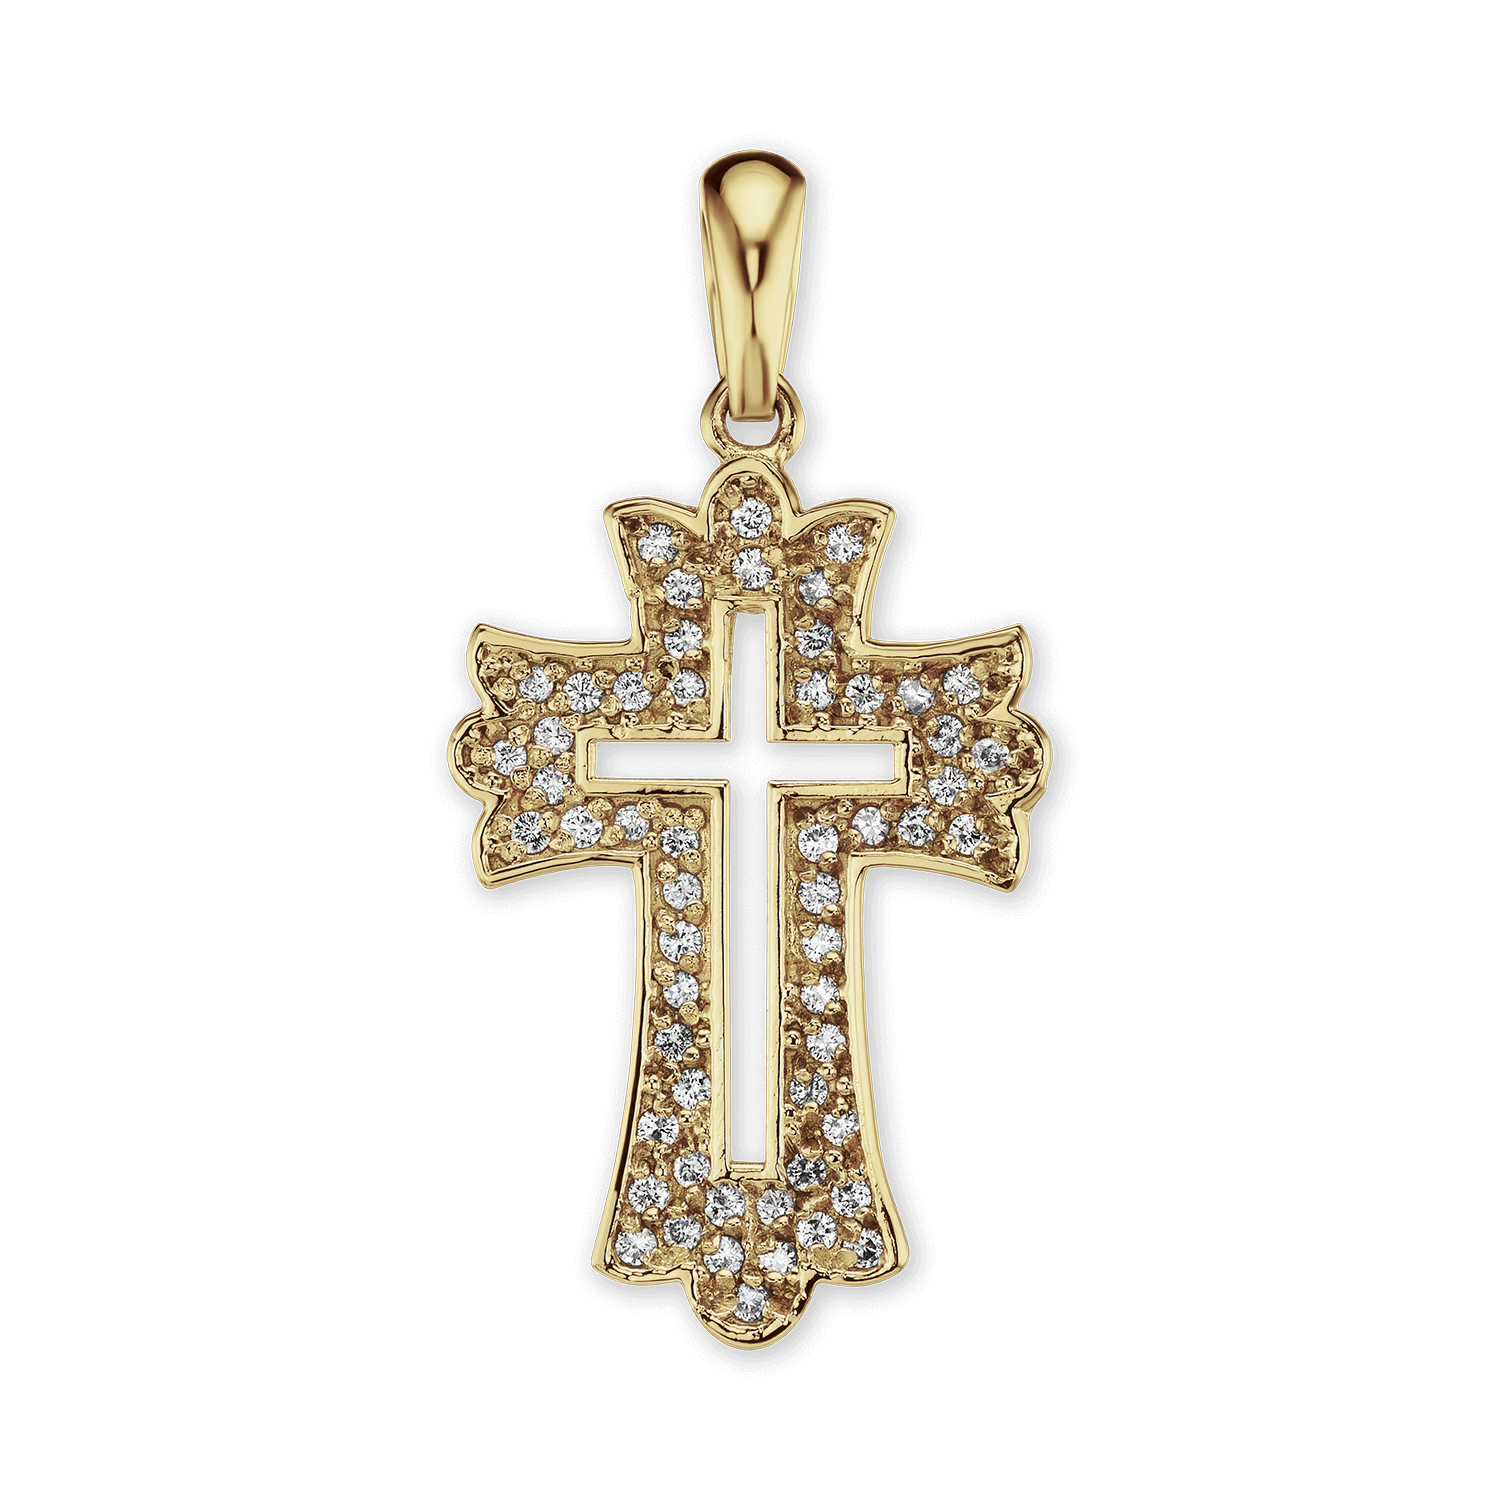 14K Gold Openwork Cross Pendant with Diamonds (35 x 16mm)